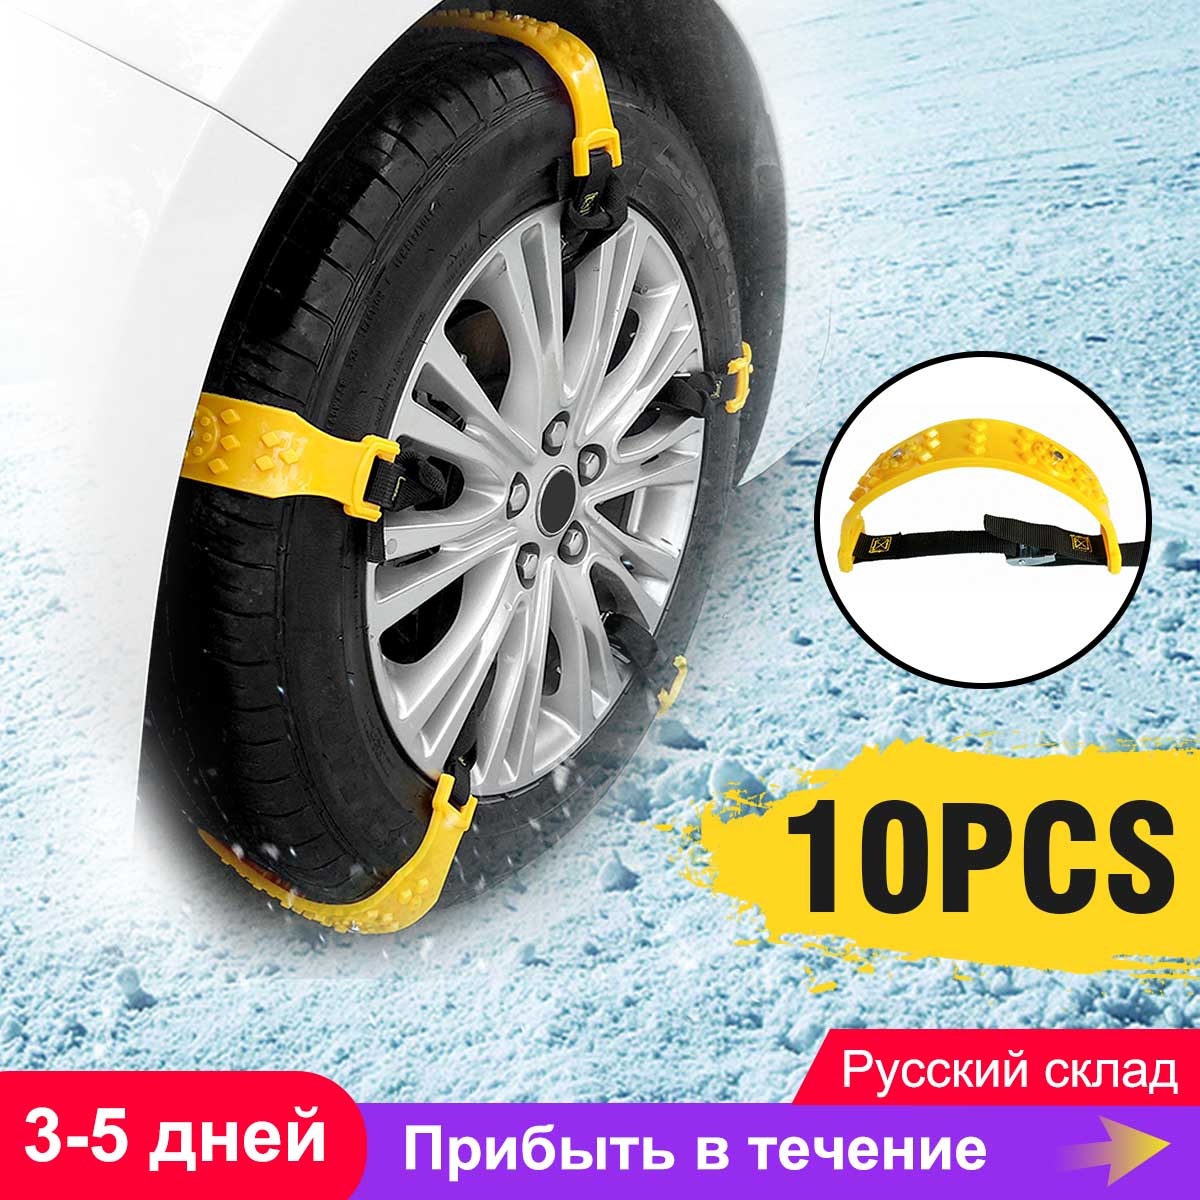 10pcs TPU Truck Car Wheels Tyre Tire Snow Chains Ice Chain Belt Winter Anti-skid Vehicles SUV Wheel Chain Mud Road Safe Safety